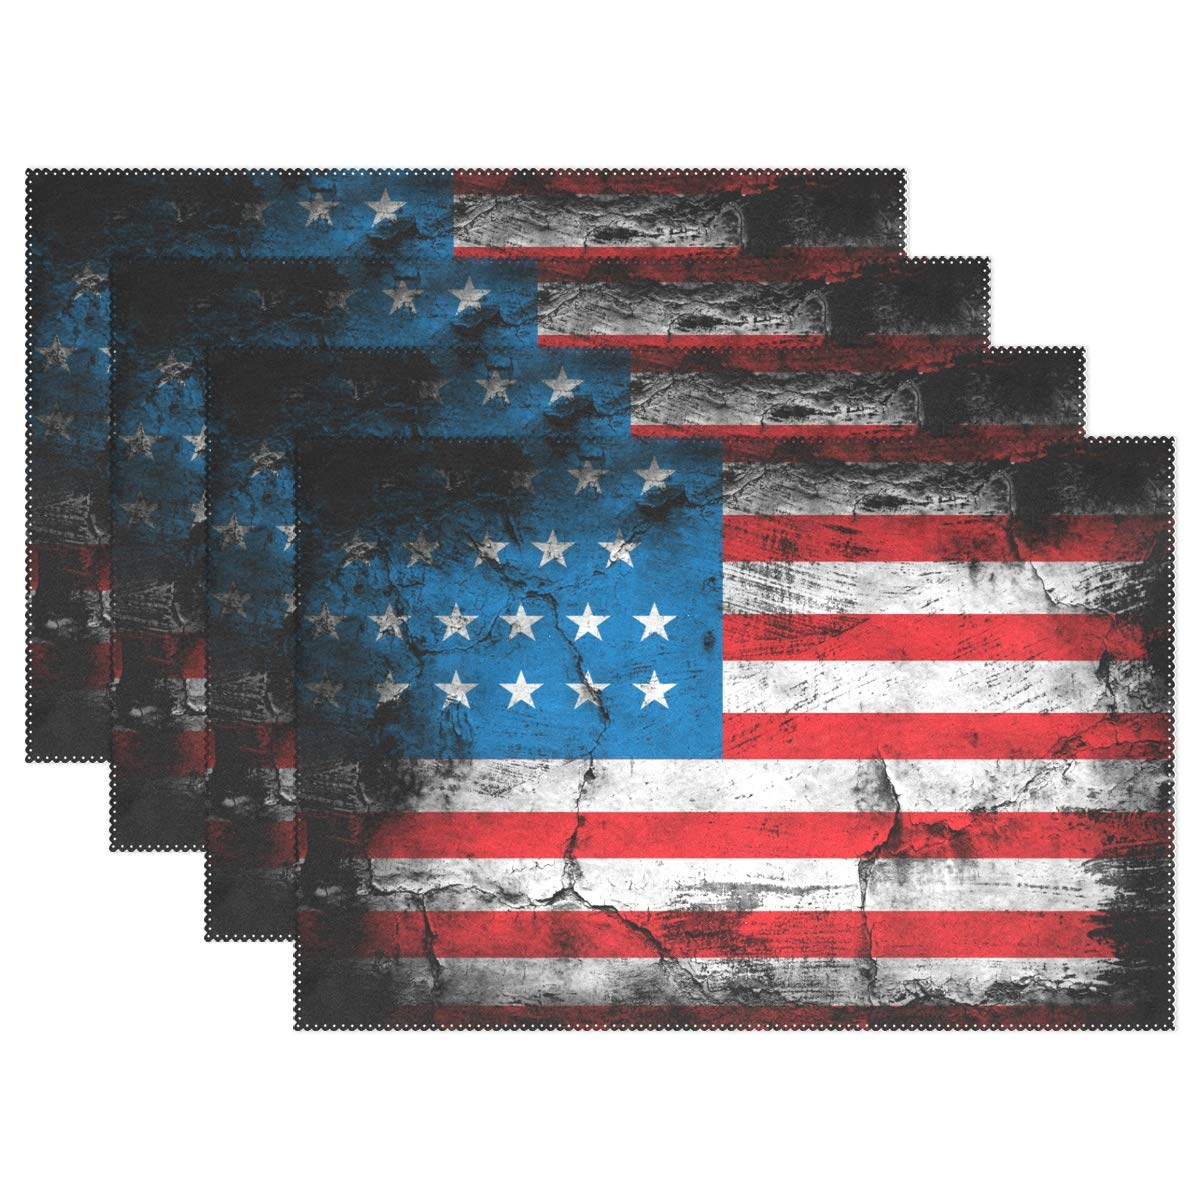 baihuishop United States of America Flag Placemats Heat-Resistant Washable Table Mats 12 X 18 Inch Placemats for Family Kitchen Hotel Coffee Shop Dinning Restaurant Set of 4